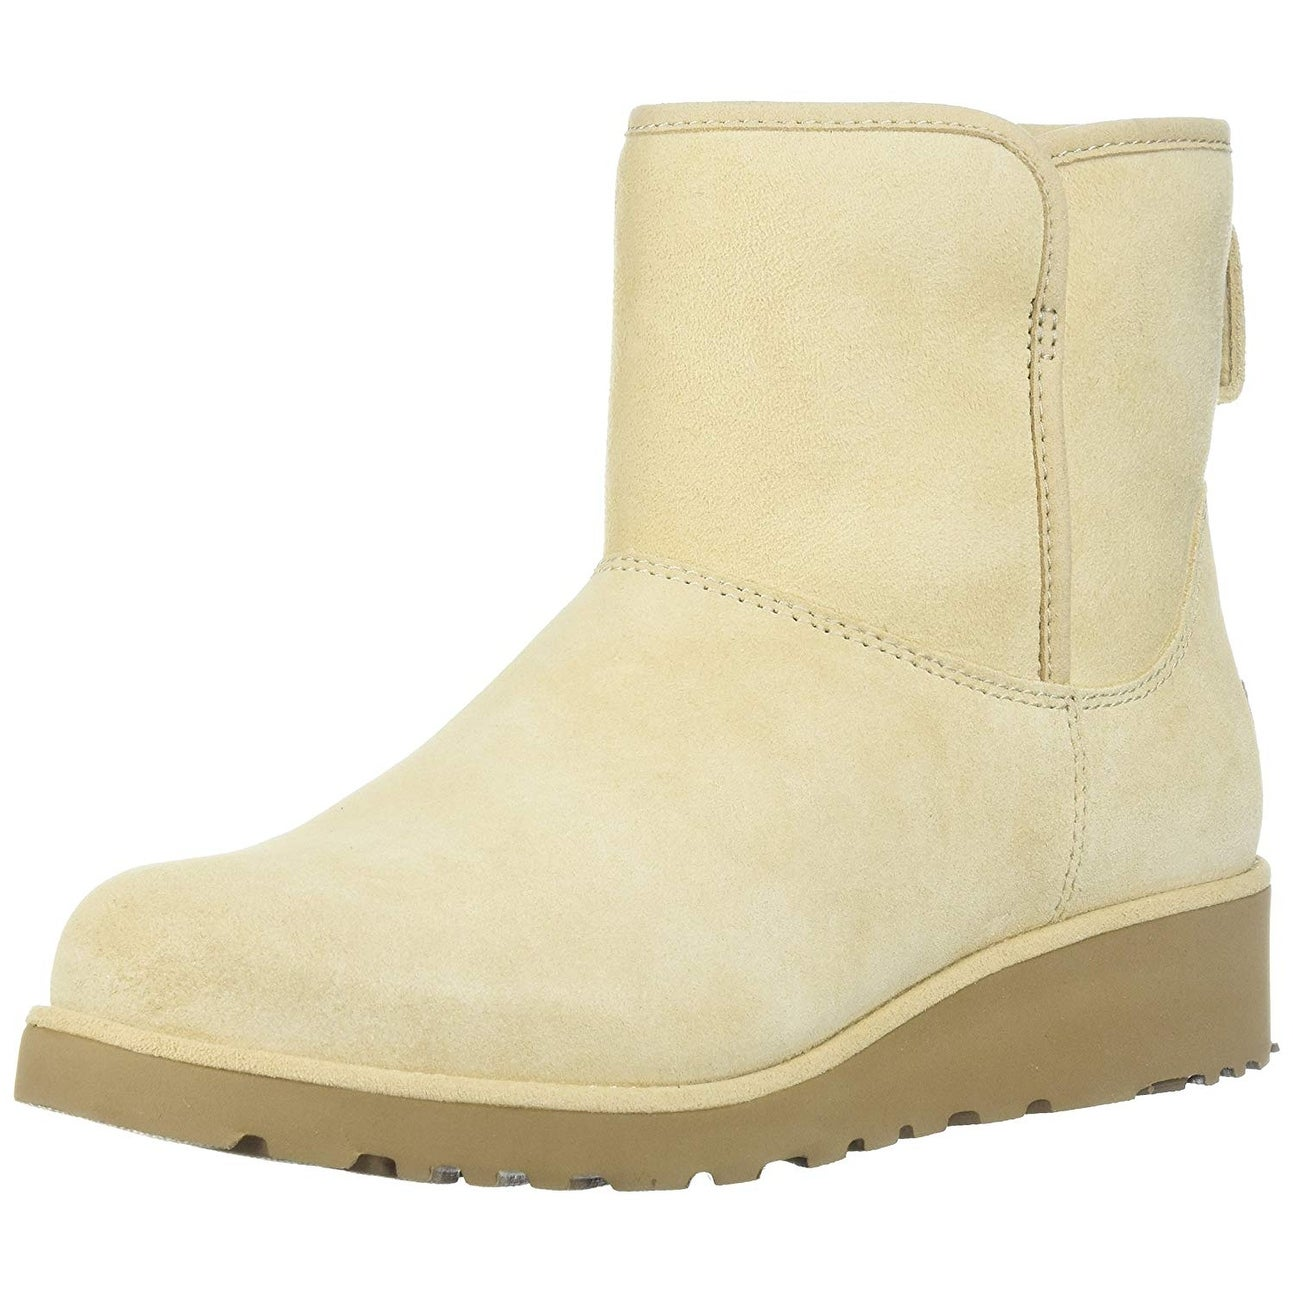 9d4787fe01f3 Shop UGG Women s Kristin Winter Boot - Free Shipping Today - Overstock -  22413146